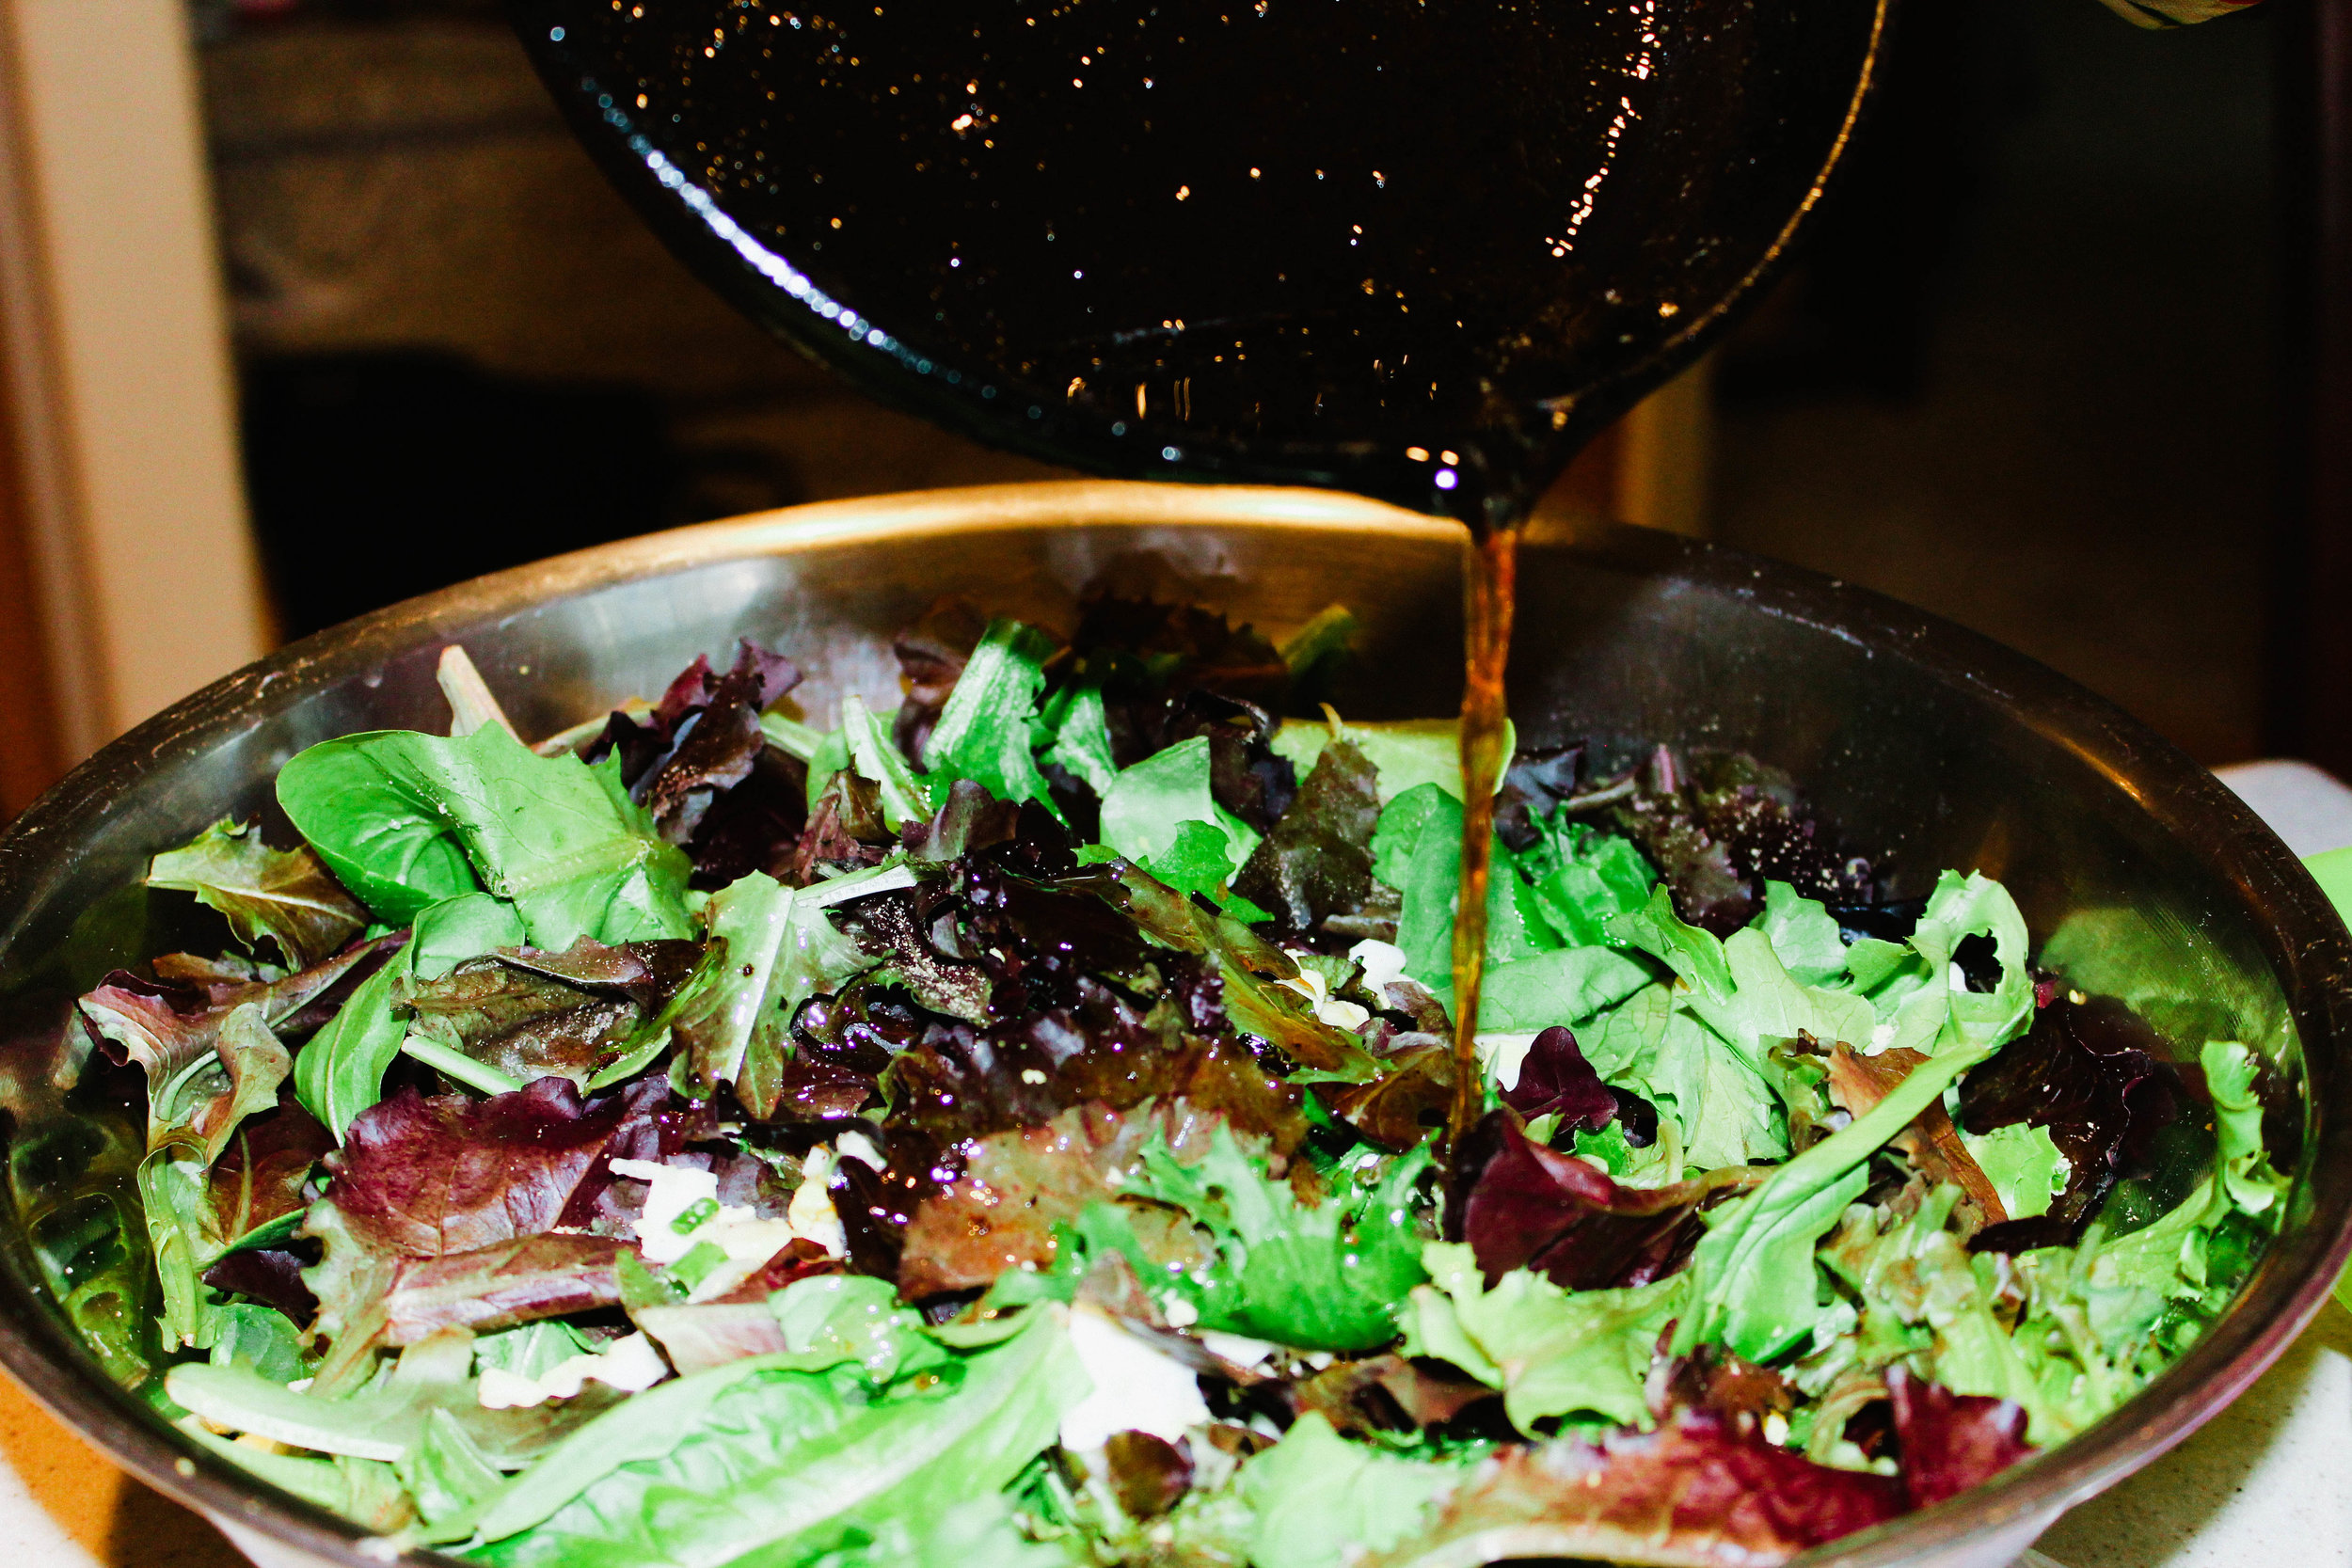 Simple-Wilted-Salad-Salad-Greens-Whole-30-Paleo-Wilted-Salad-Gaps-Diet-Protocol-How-To-Eat-Salad-On-Gaps